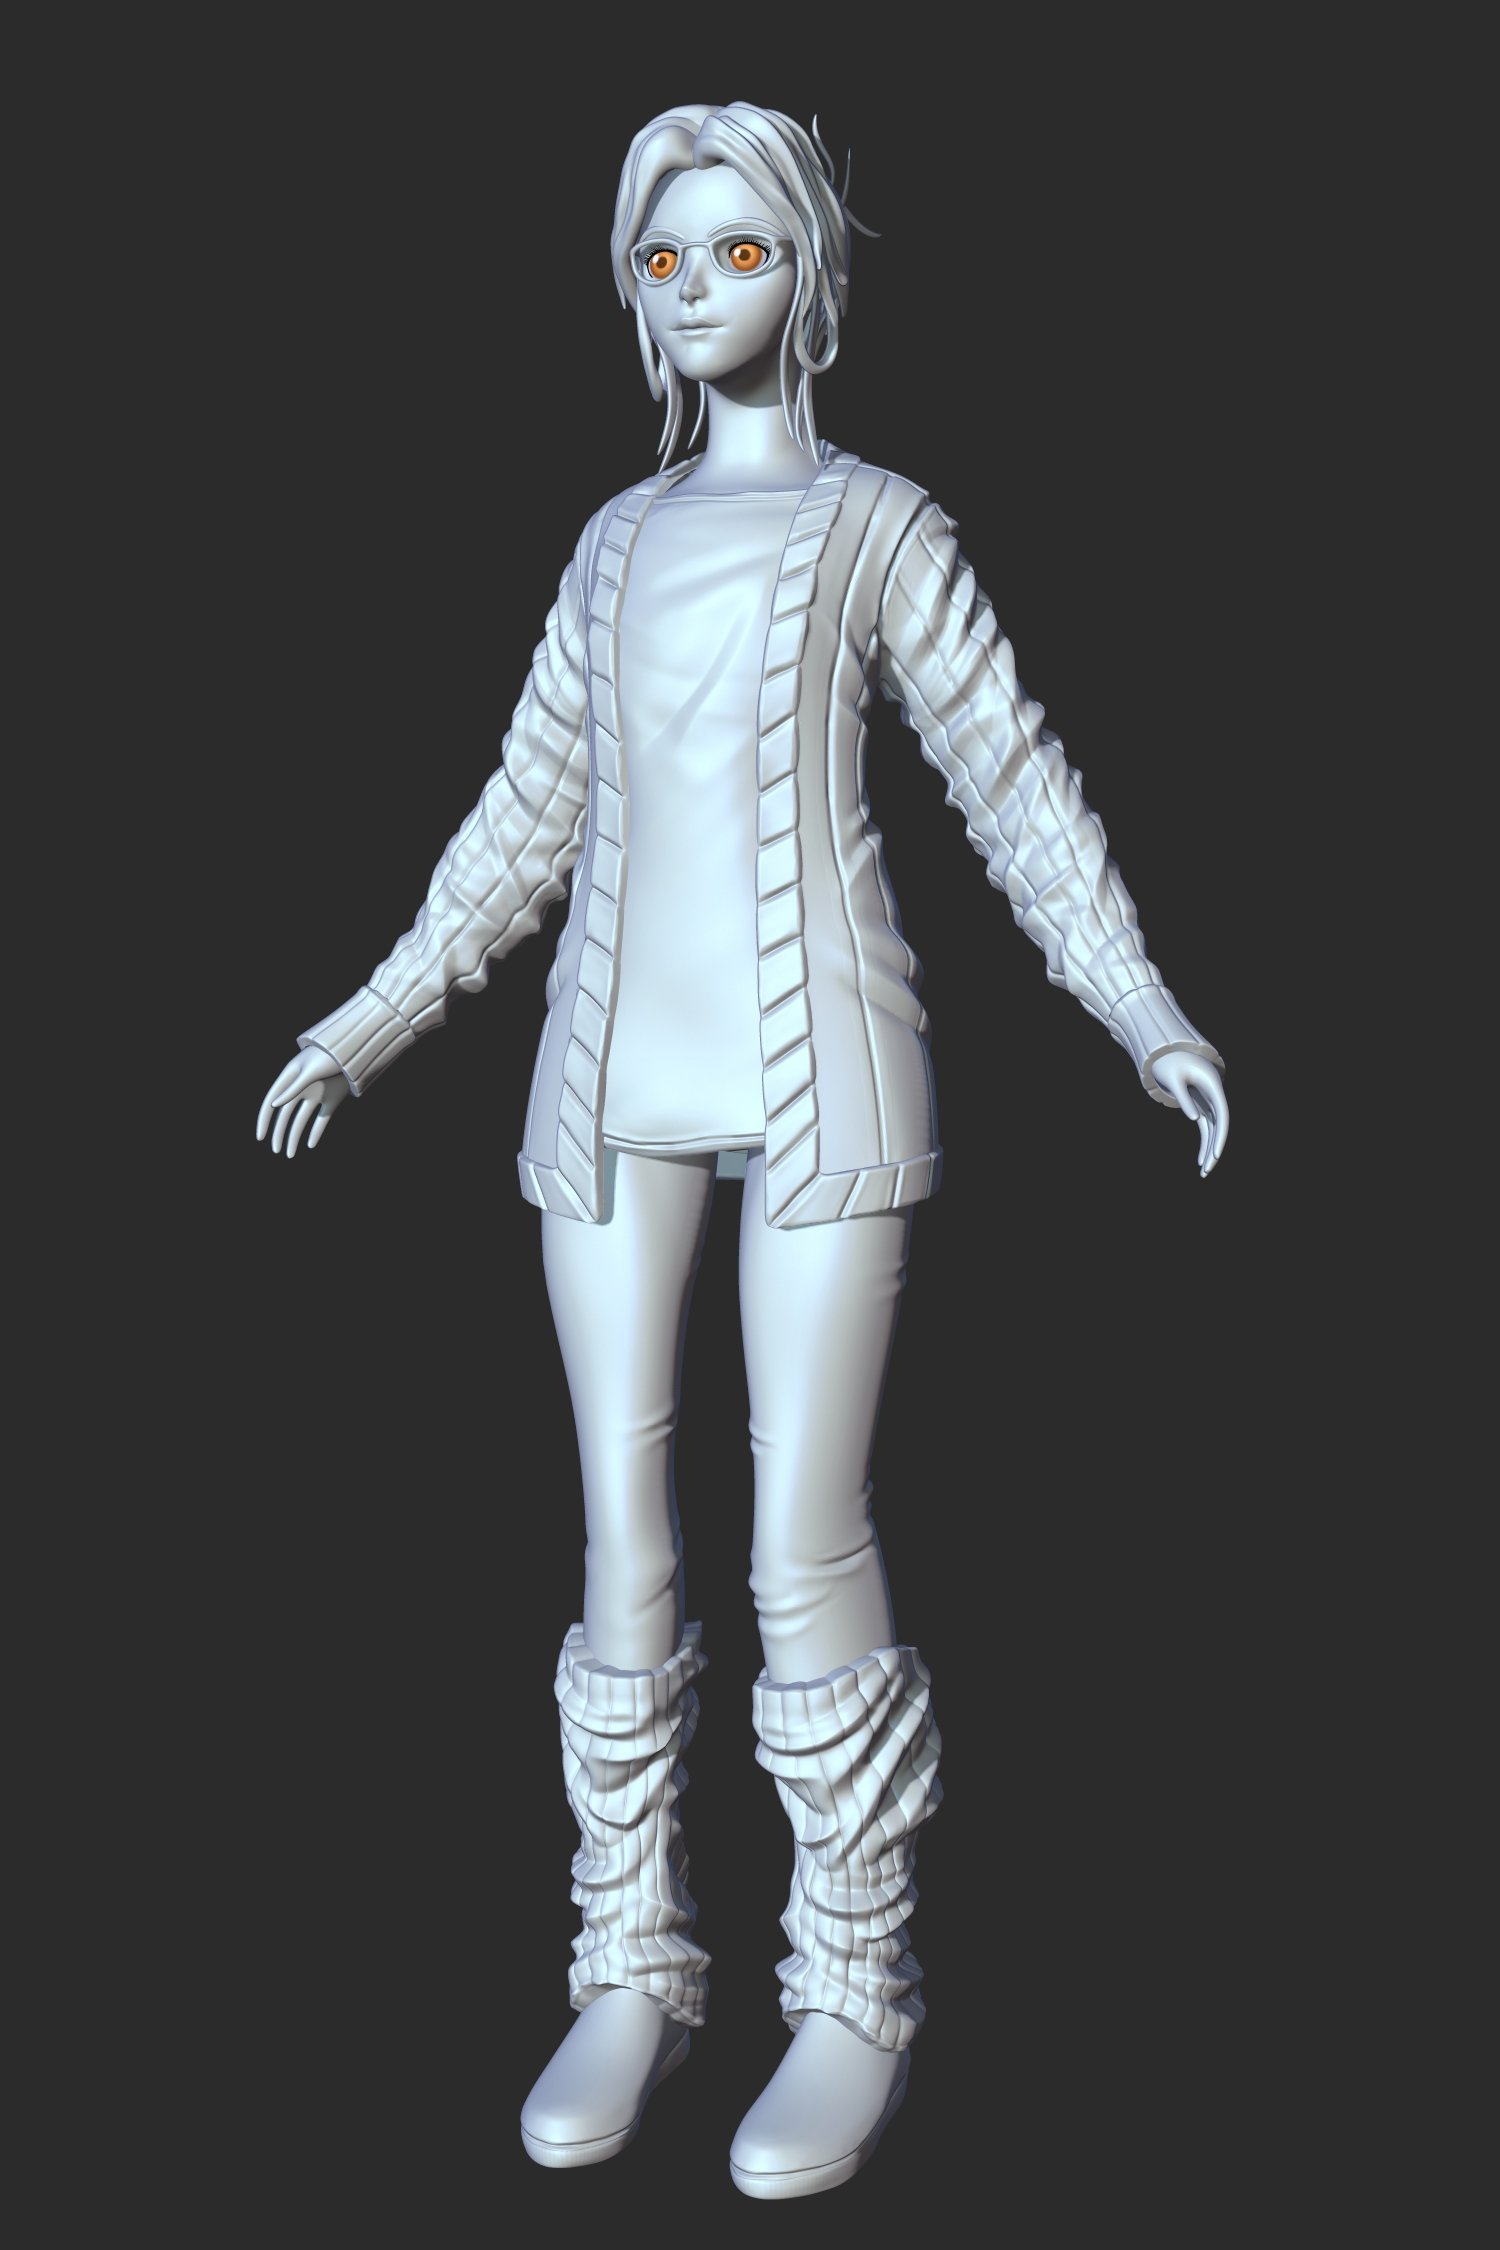 the Girl - Sculpt